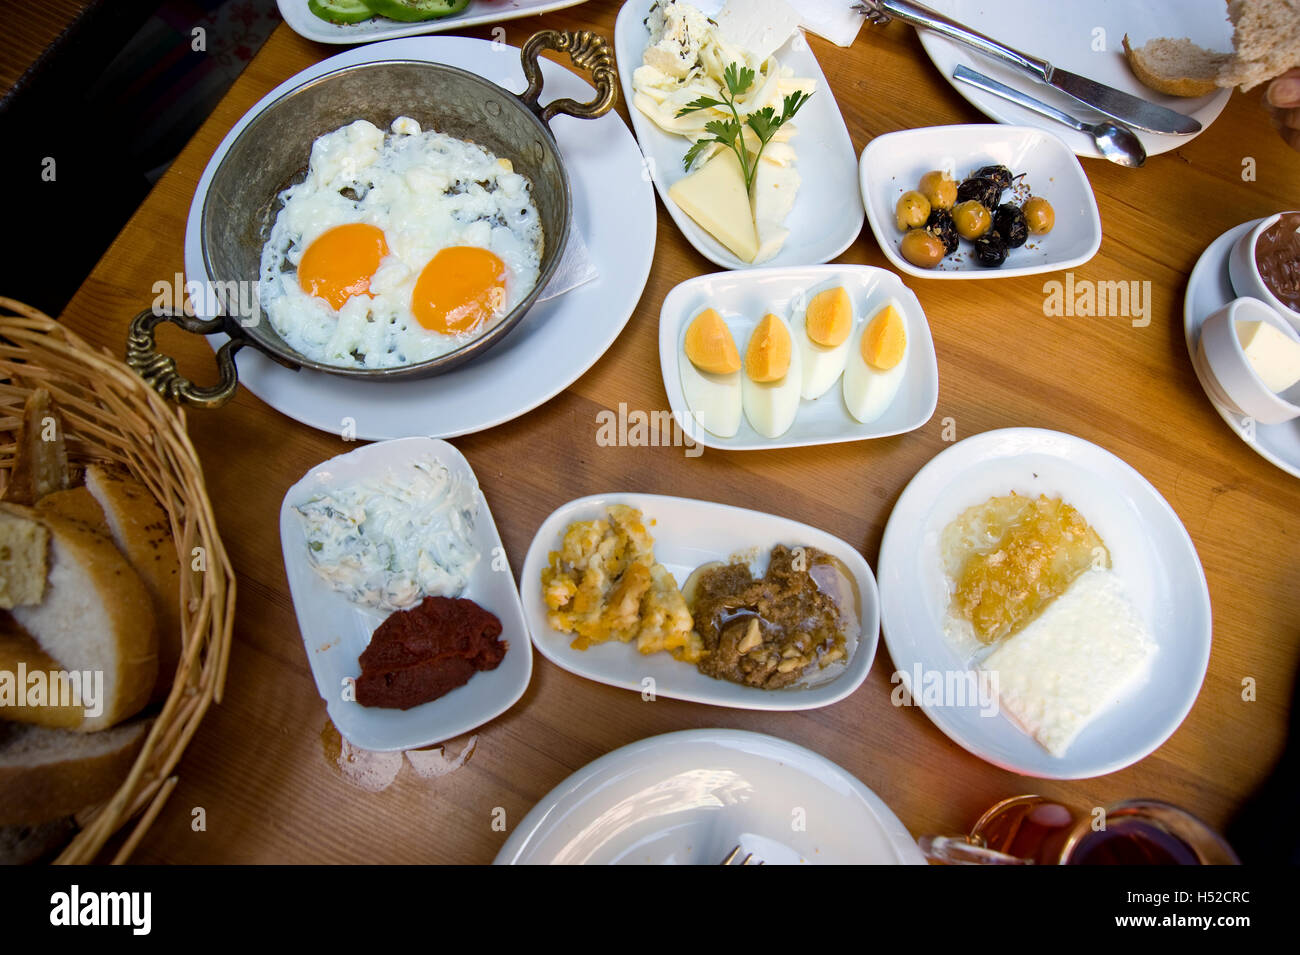 Breakfast dishes on restaurant in Istanbul, Turkey - Stock Image